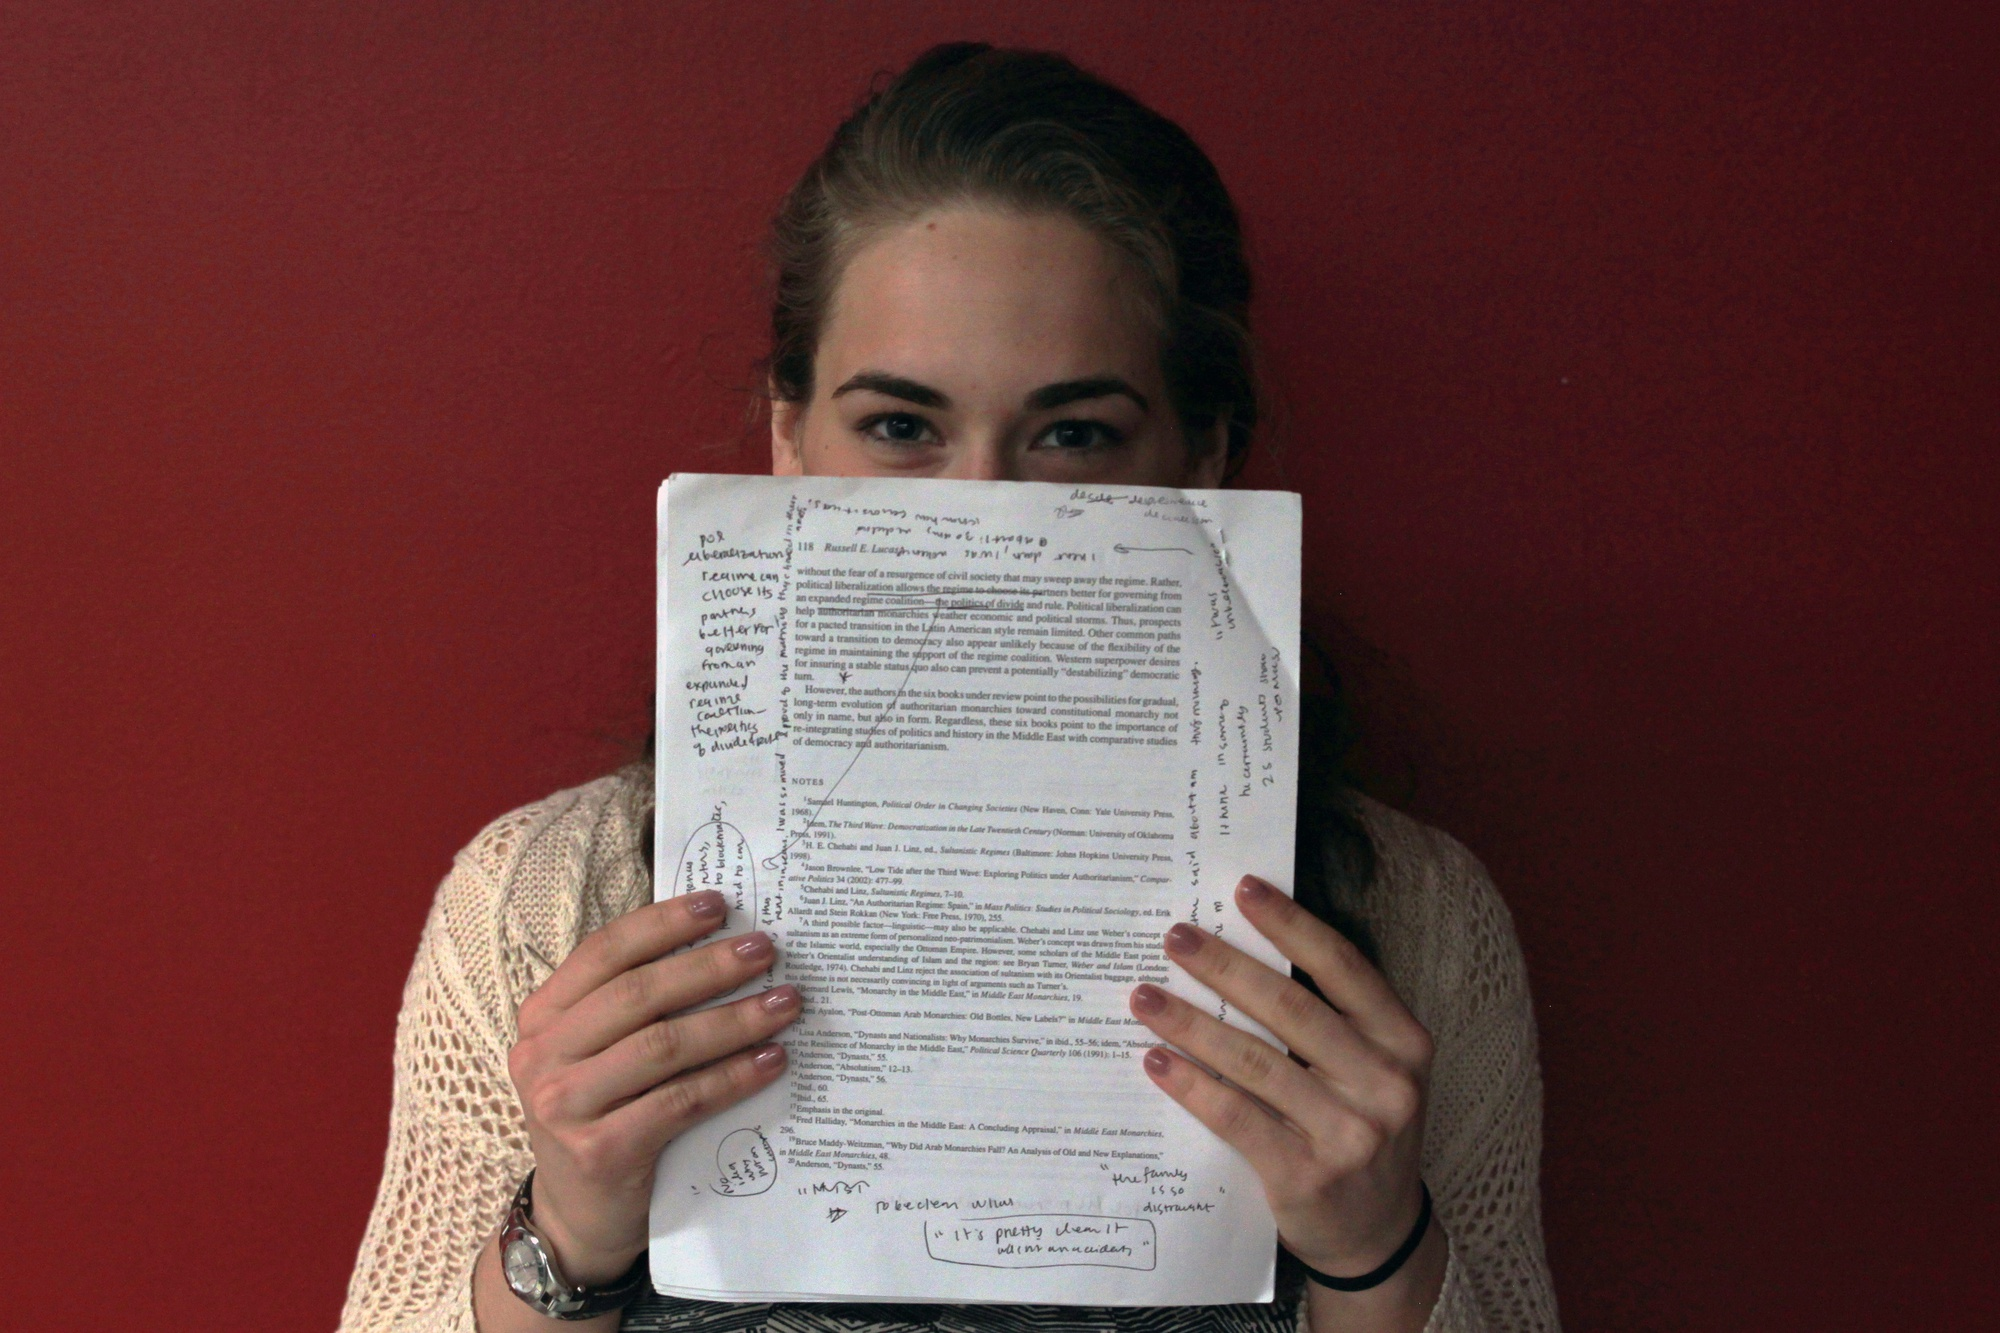 Mallory J. Weiss '15 is writing an original play for her creative thesis.